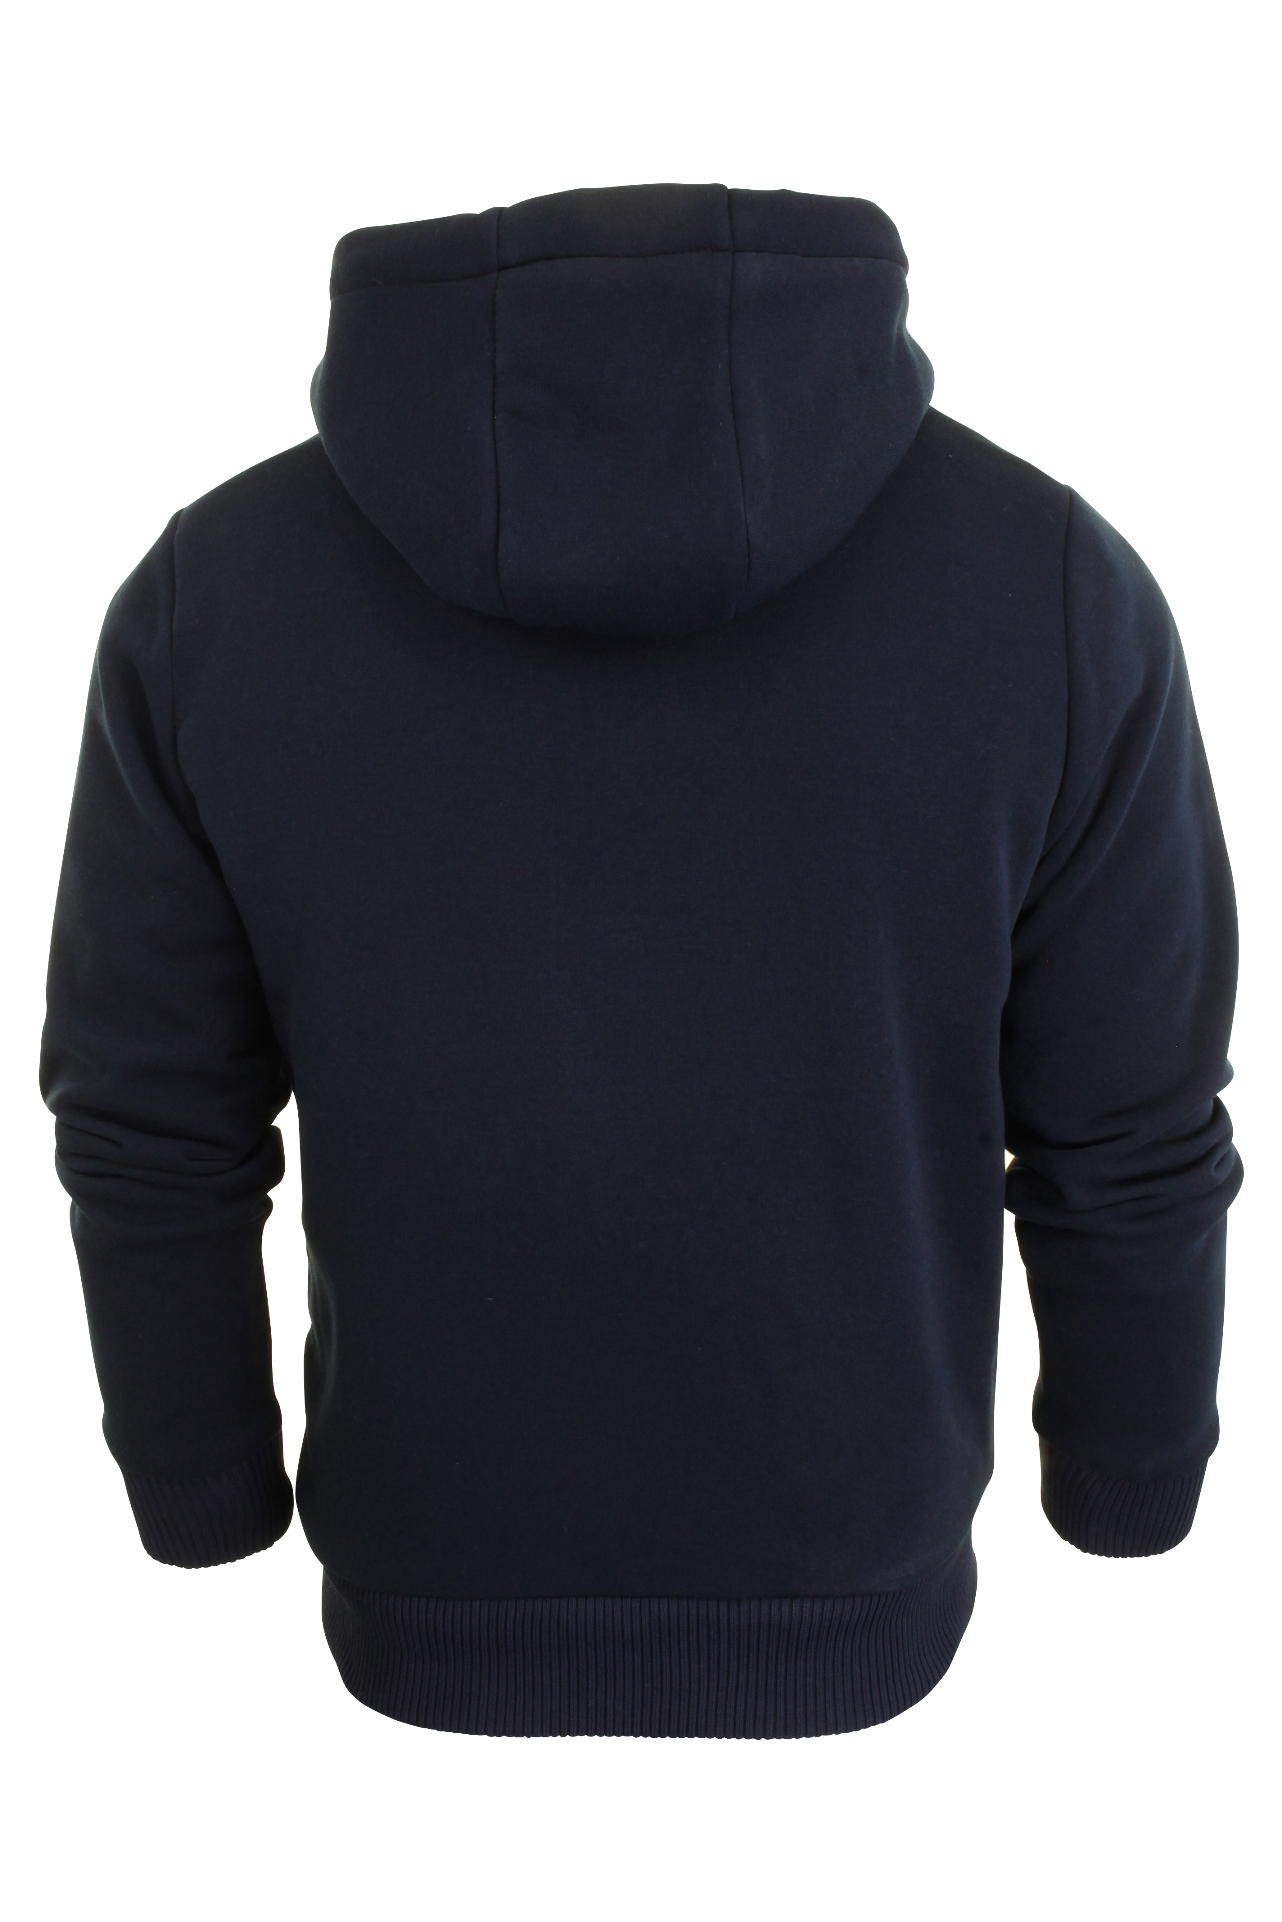 Mens-Dissident-Hoodie-039-Bolo-2-039-Fleece-Lined-Hood-amp-Body thumbnail 11